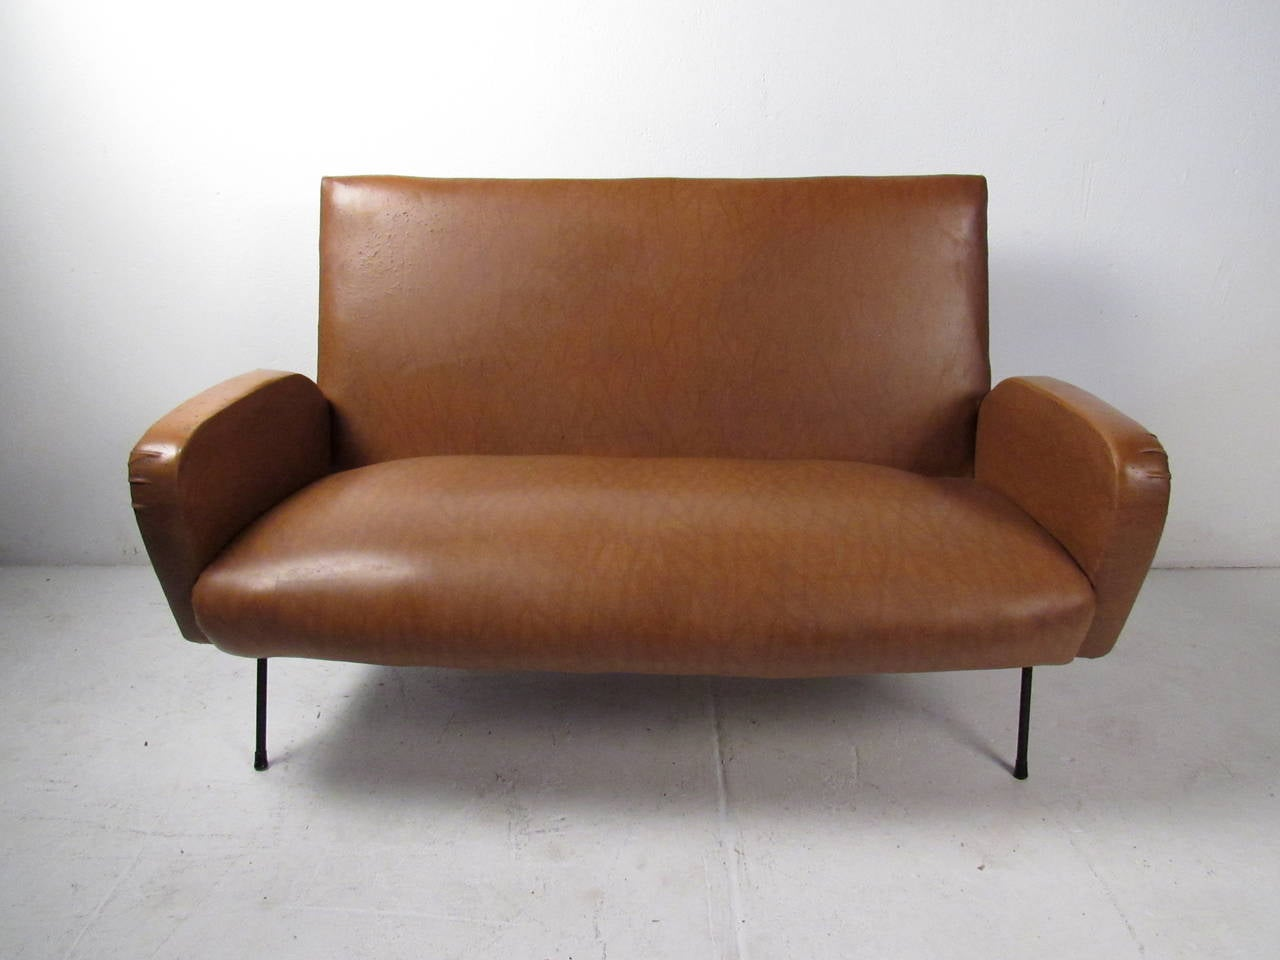 This Mid-Century Italian settee features a sculpted frame with iron legs which offers a modern accent and comfortable seating to any home or office space. Vintage modern two-seat sofa makes the perfect occasional seating for any interior.  Please